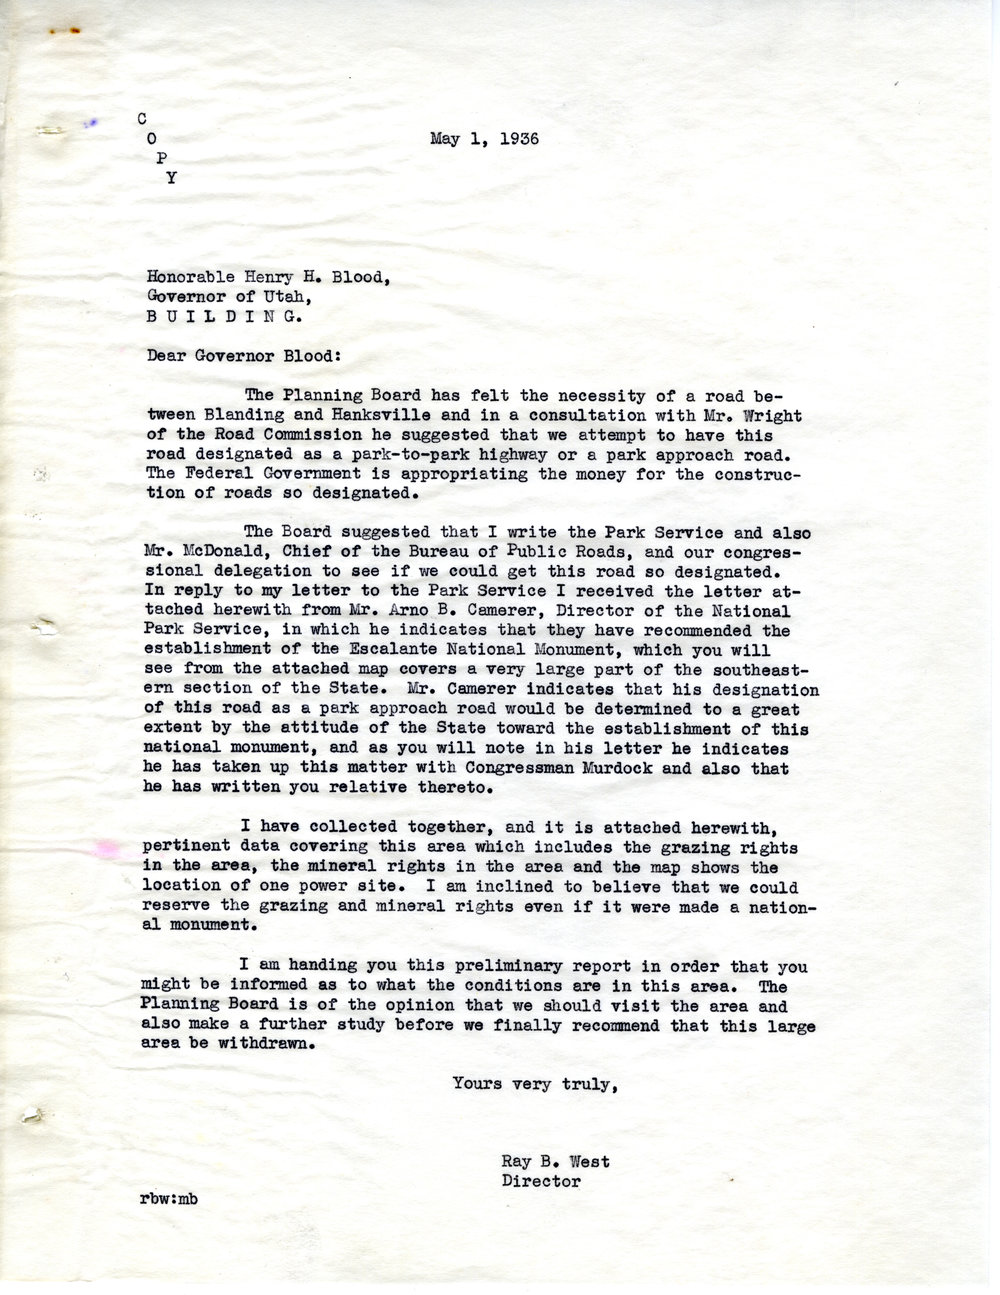 1936 LETTER FROM RAY B. WEST TO GOVERNOR HENRY BLOOD (SERIES 22028).